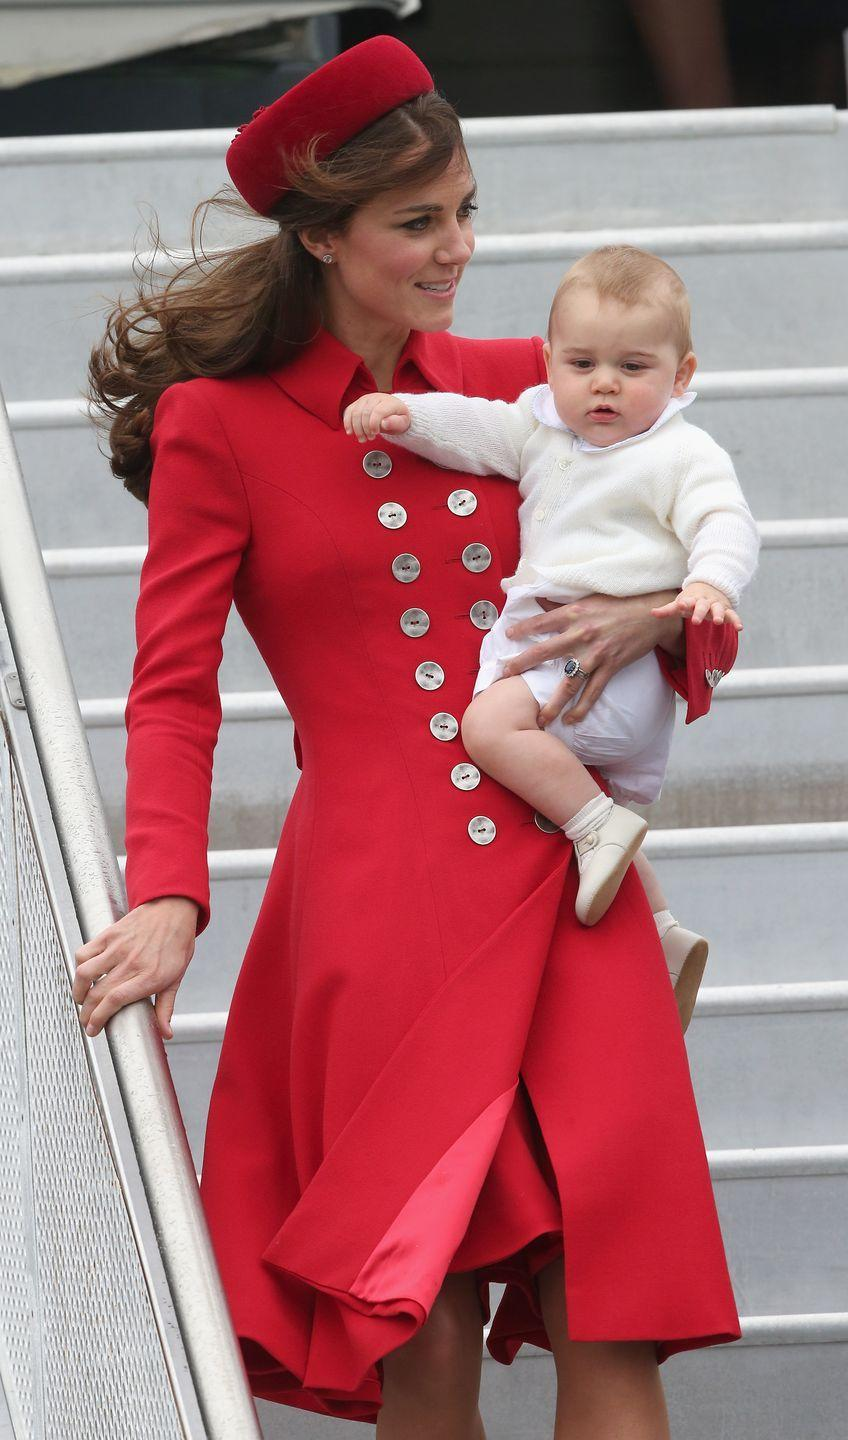 <p>Hello, Jackie-O! Middleton stepped off the plane in New Zealand with Prince George. The family embarked on a three-week royal tour of New Zealand and Australia, including visits to organizations and sightseeing.</p>